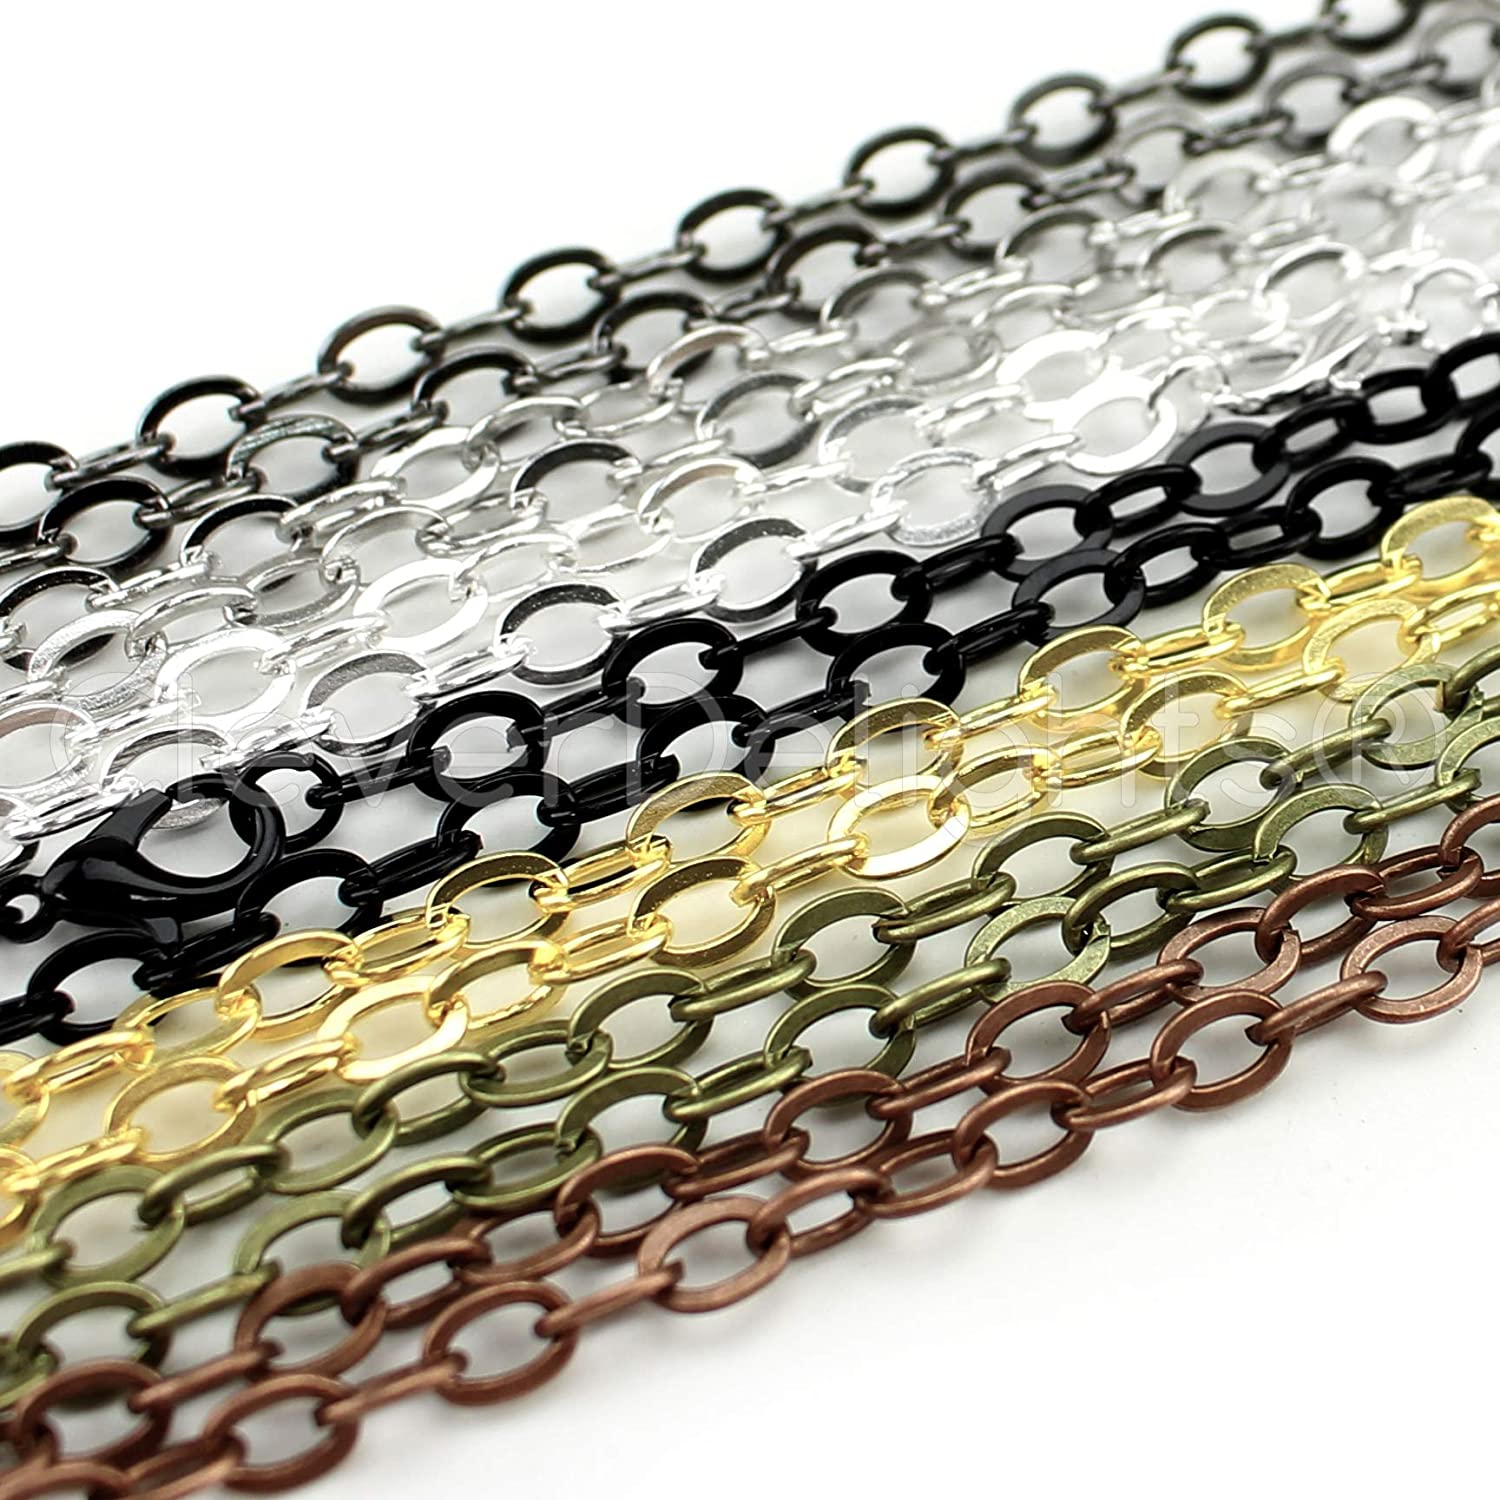 21 Pack - CleverDelights Flat Oval Cable Chain Necklaces - 24 Inch - Mix Pack - 5x7mm Flat Oval Links - Adjustable Length